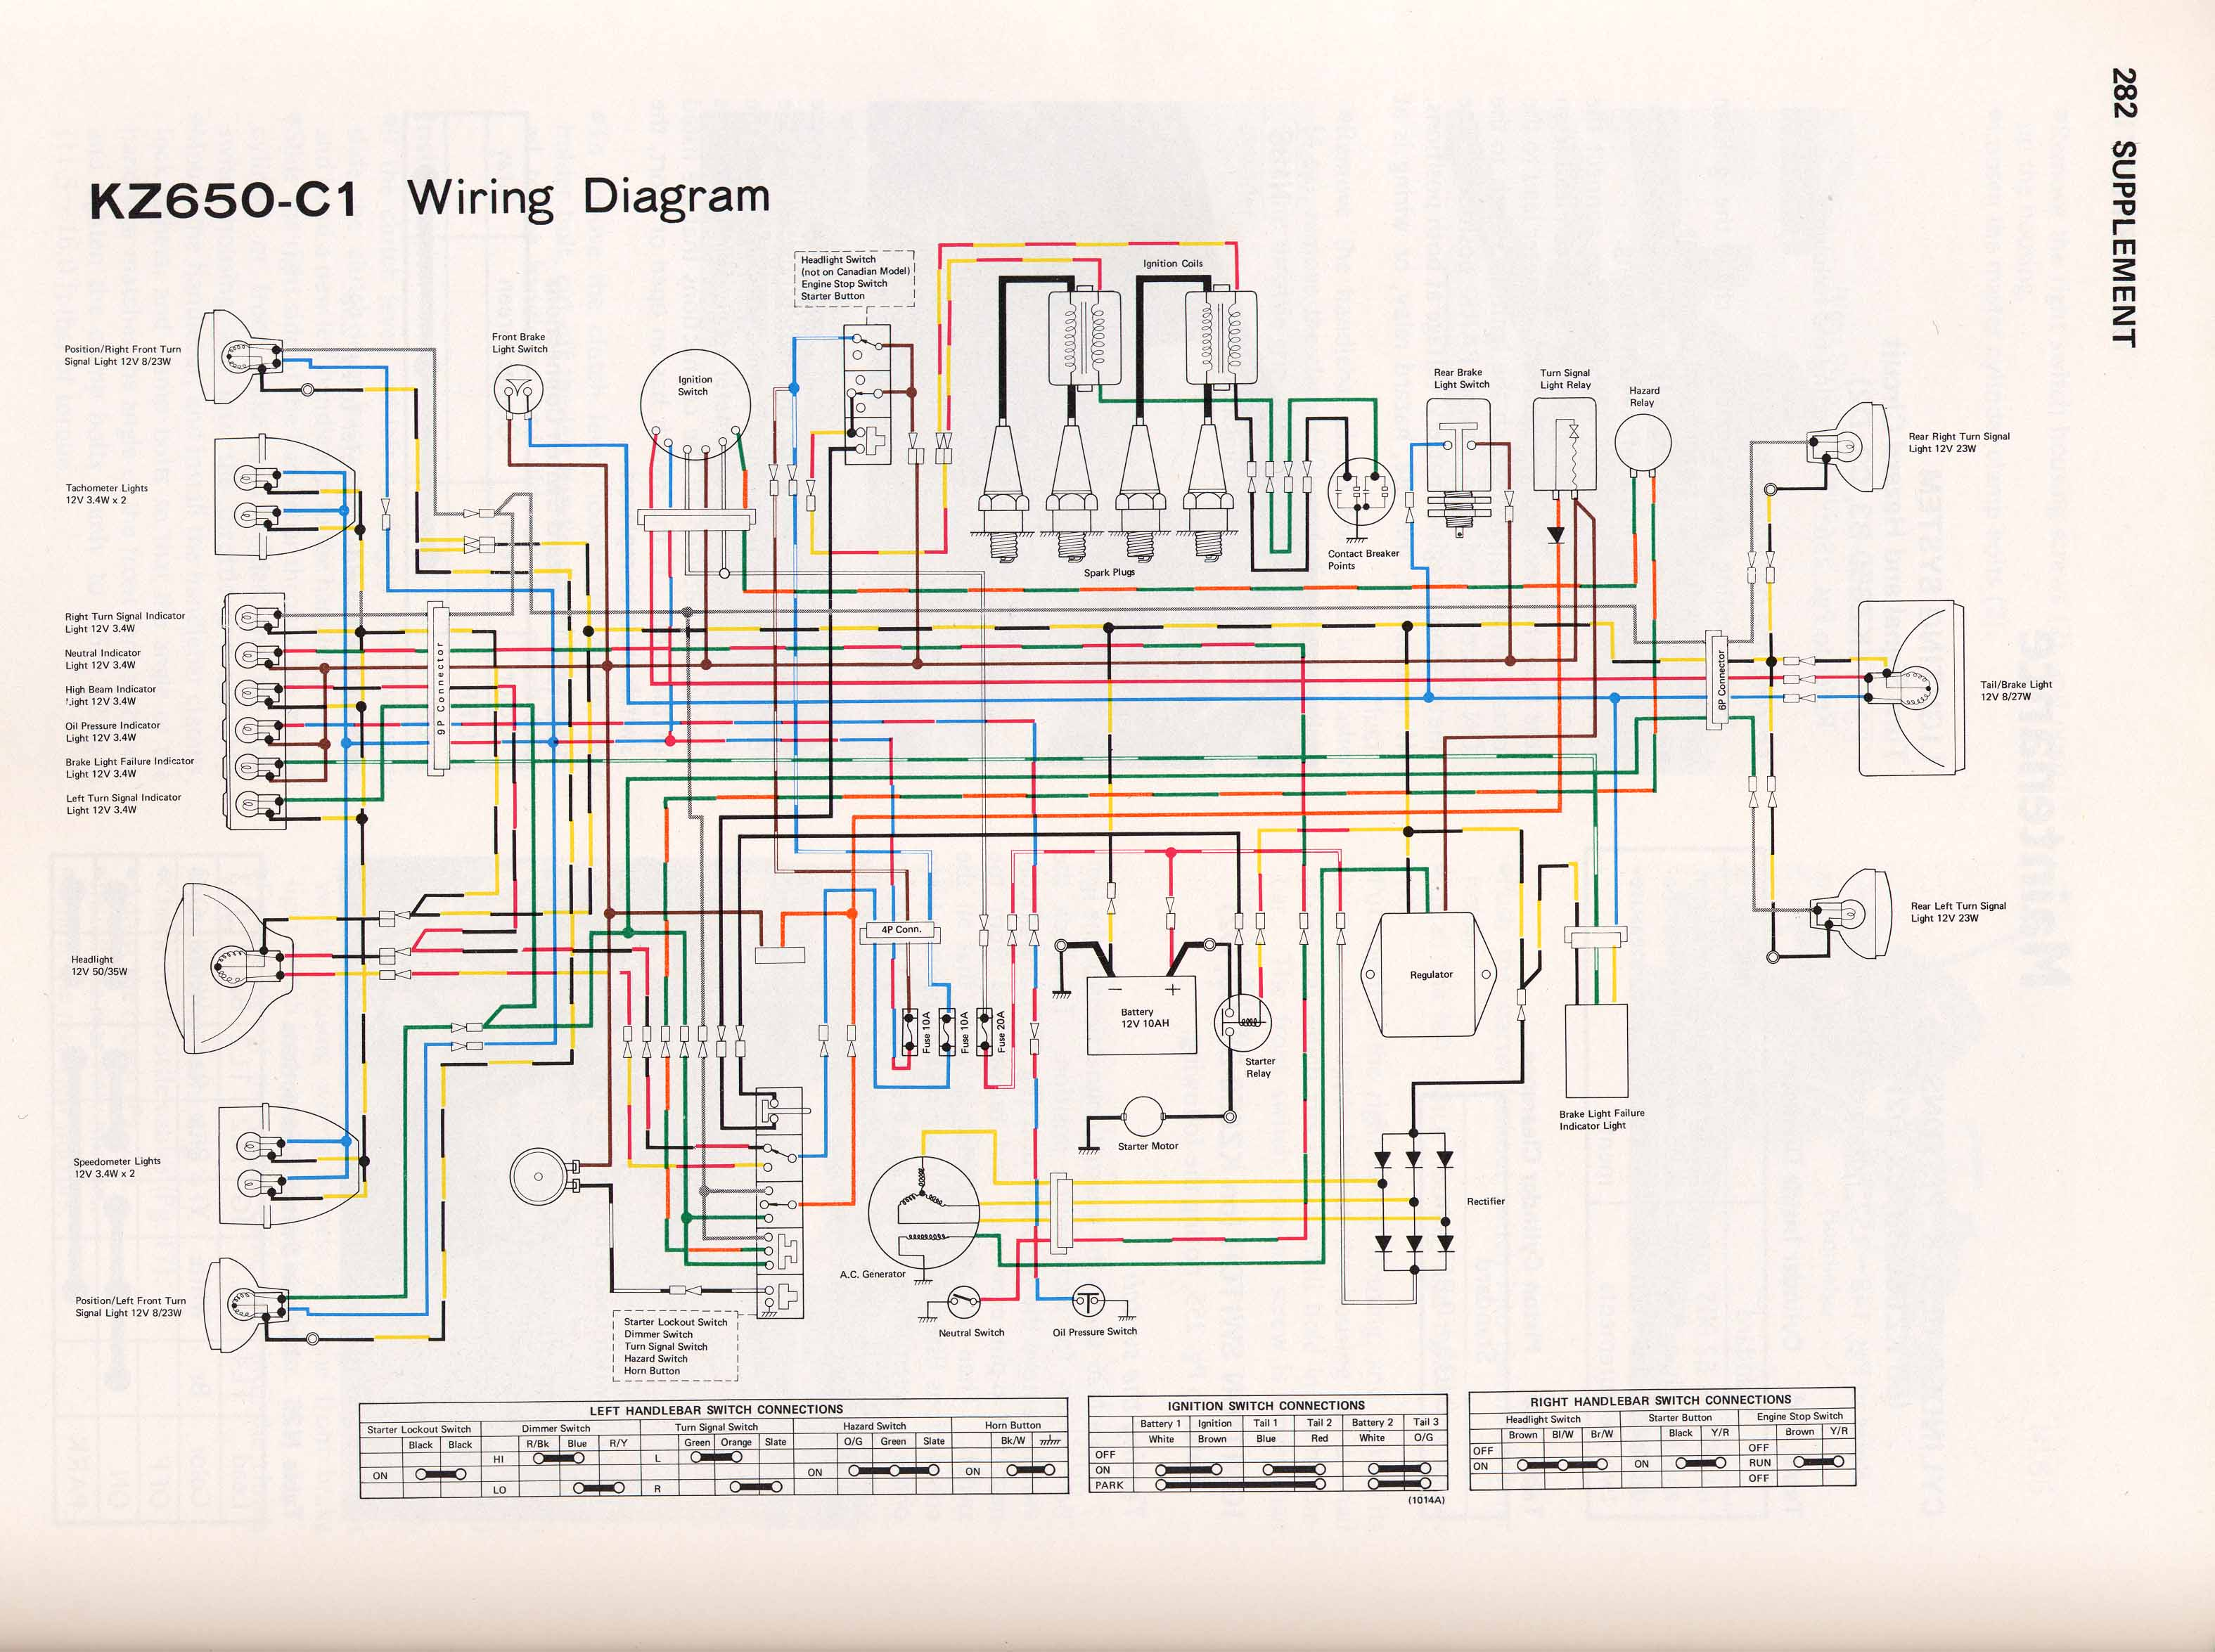 Zx600 Wiring Diagram Free Download Wiring Diagrams - Zx600d Wiring Diagram